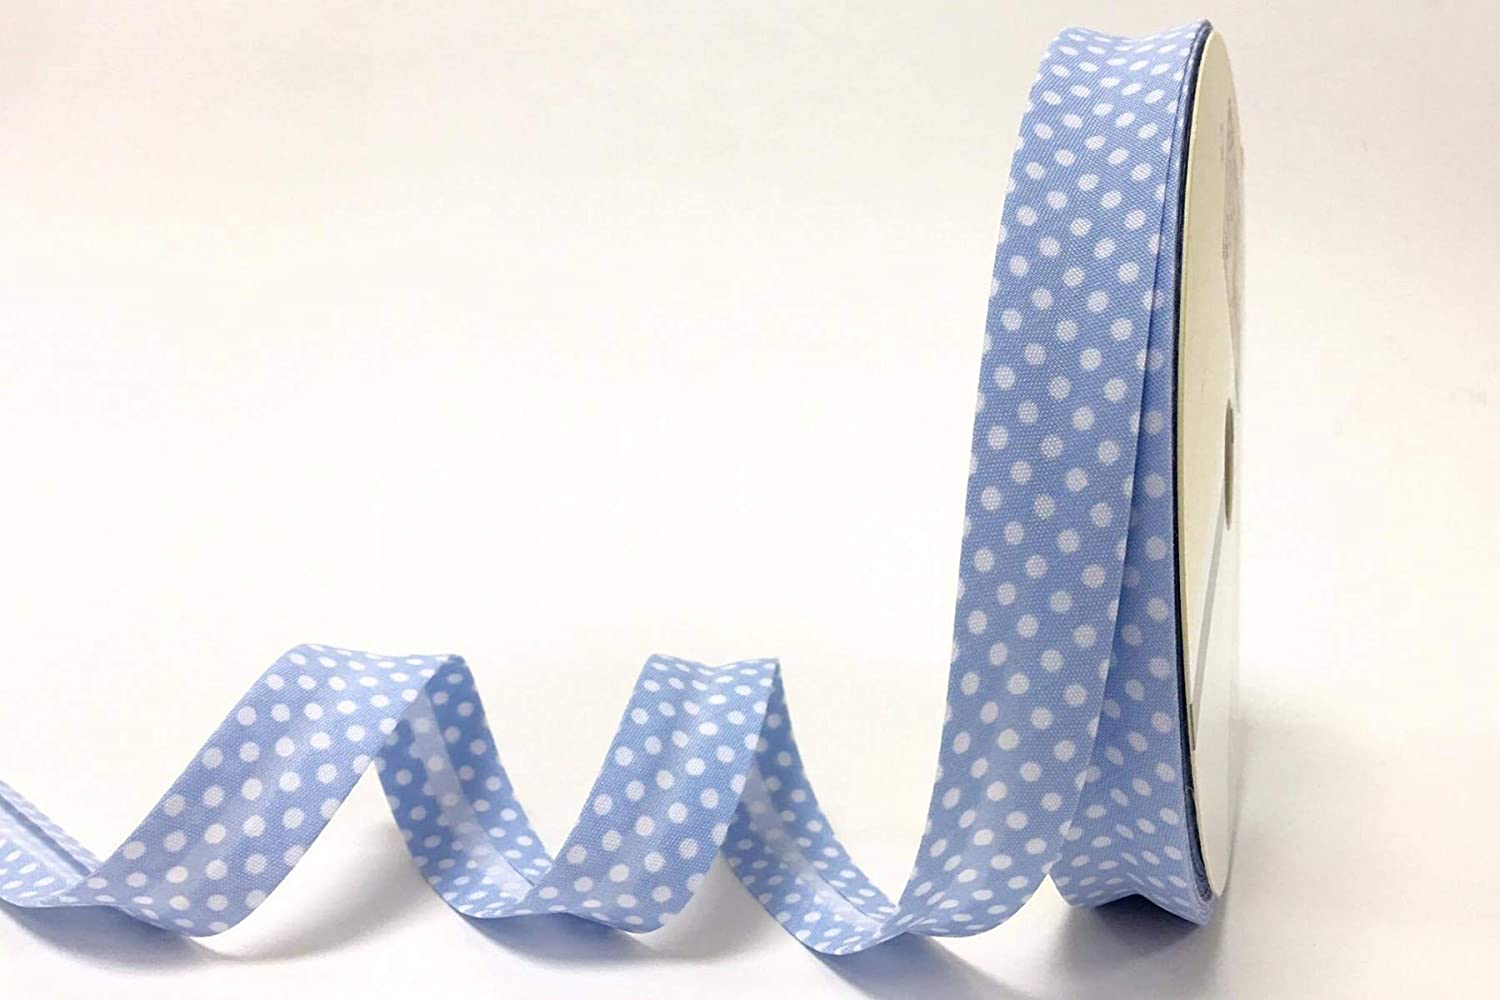 N.B. this is a cut from a roll Fany Pale Blue Polka Dot 18mm Bias Binding on a 3m Length